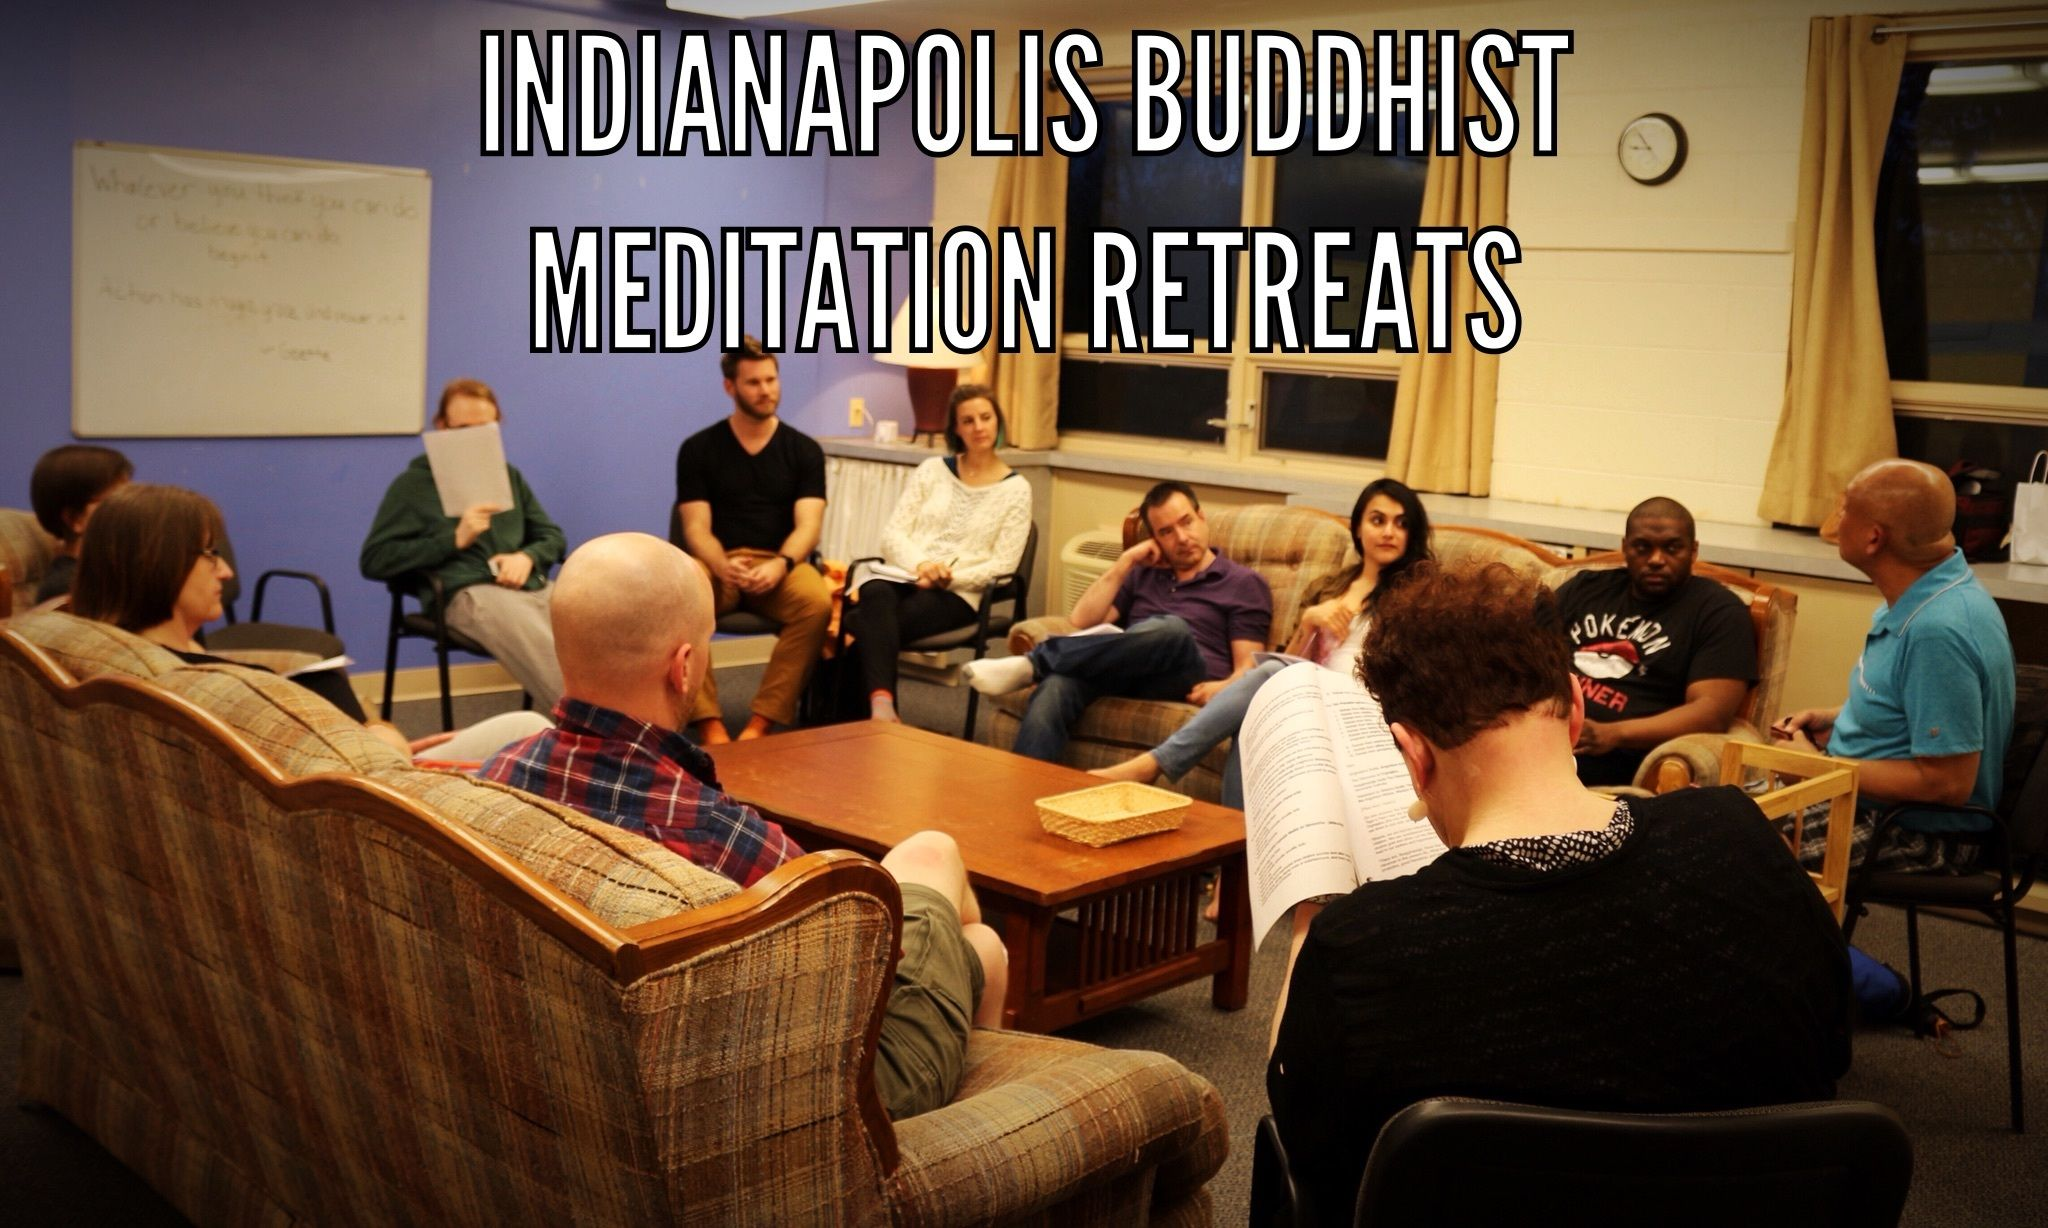 Indianapolis Buddhist Meditation Retreats